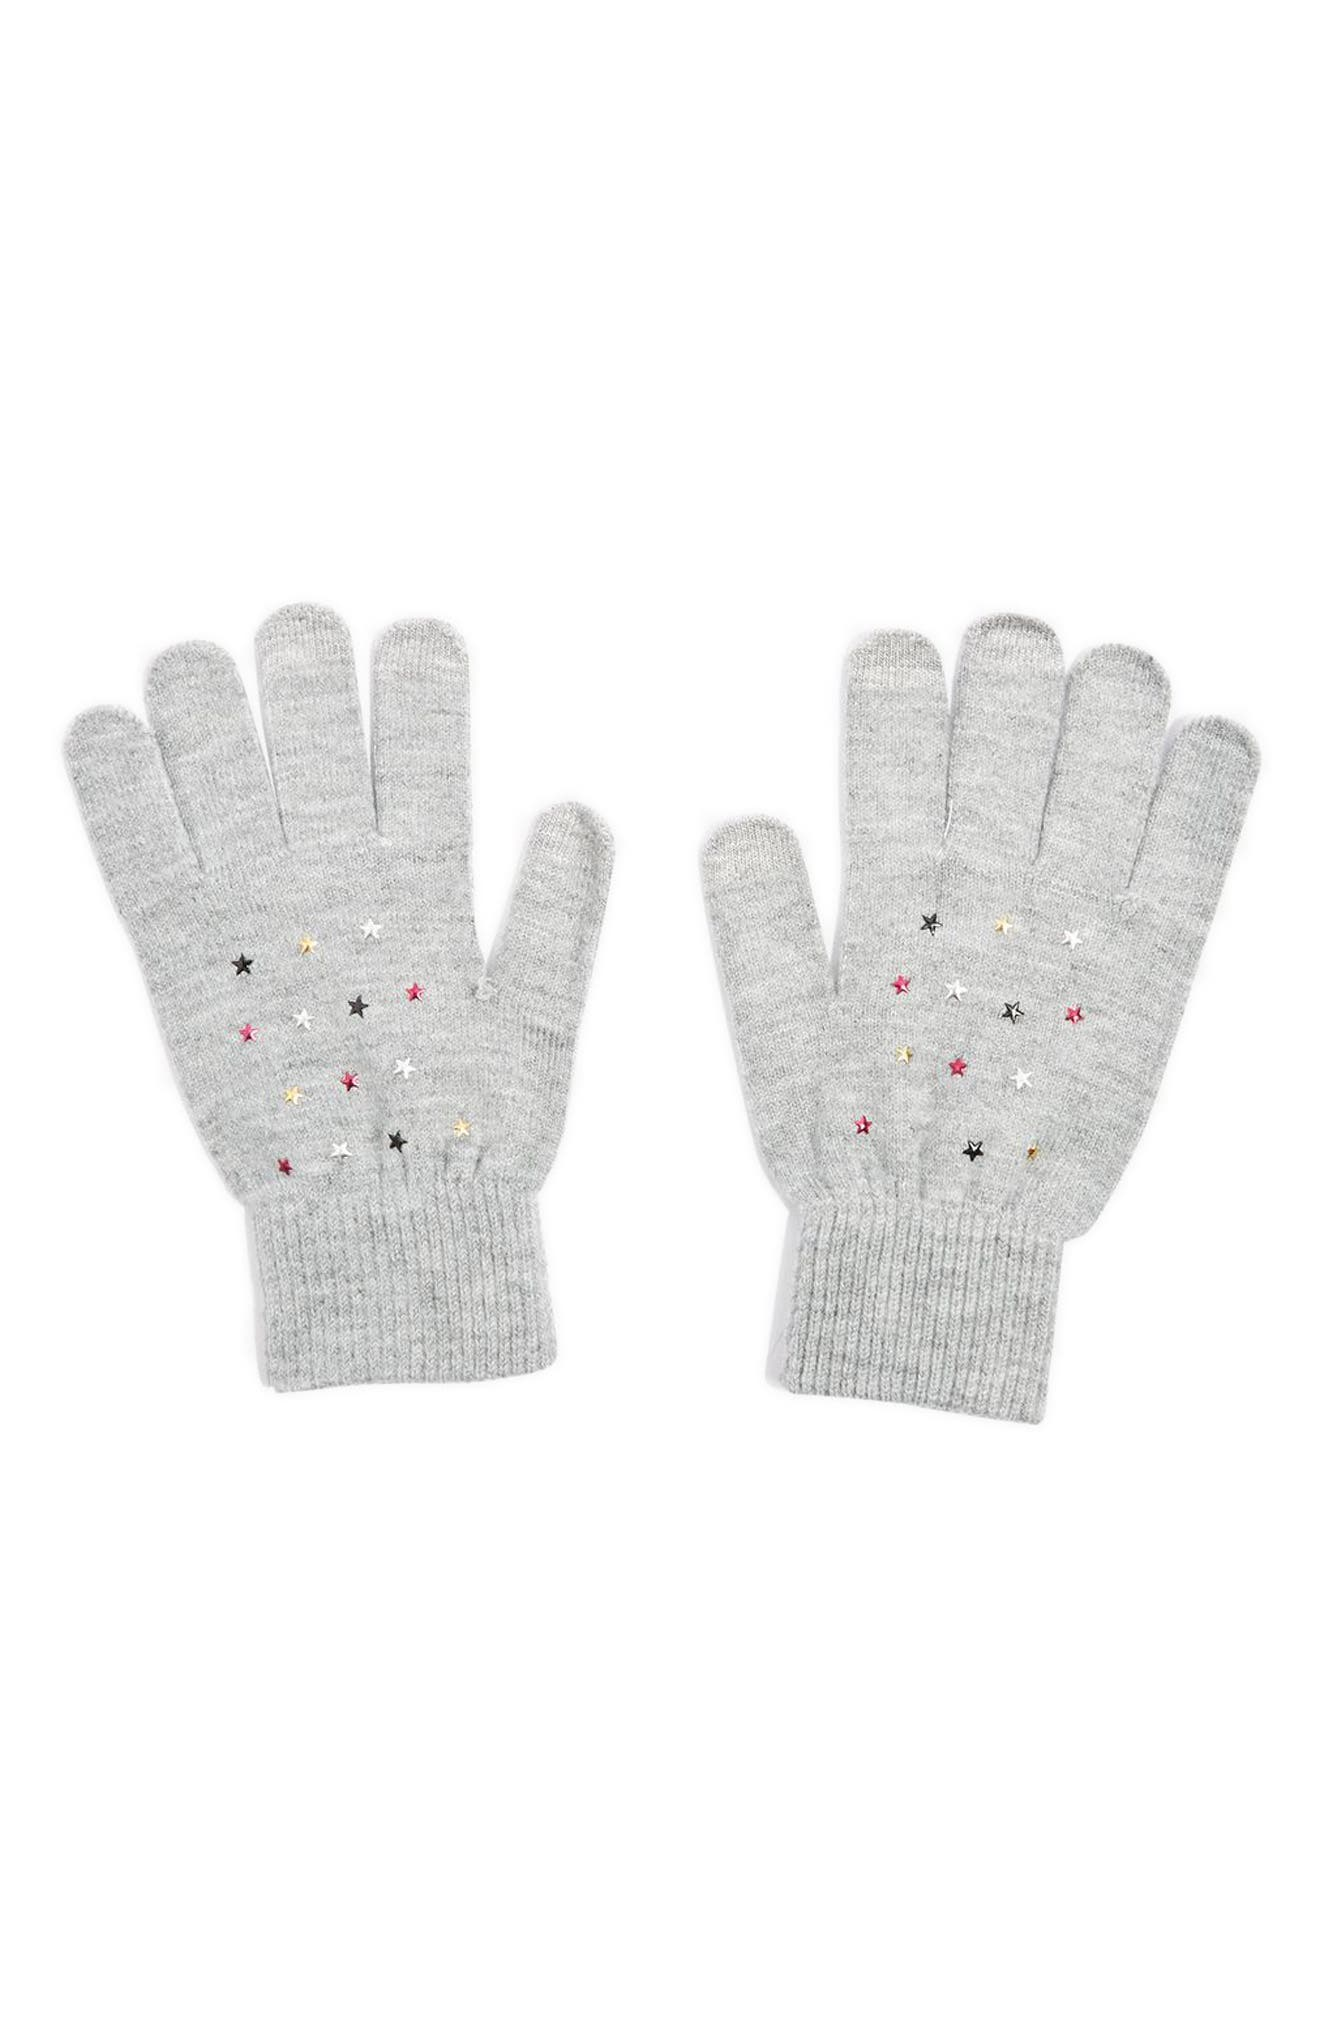 Knit Star Gloves,                         Main,                         color, 020